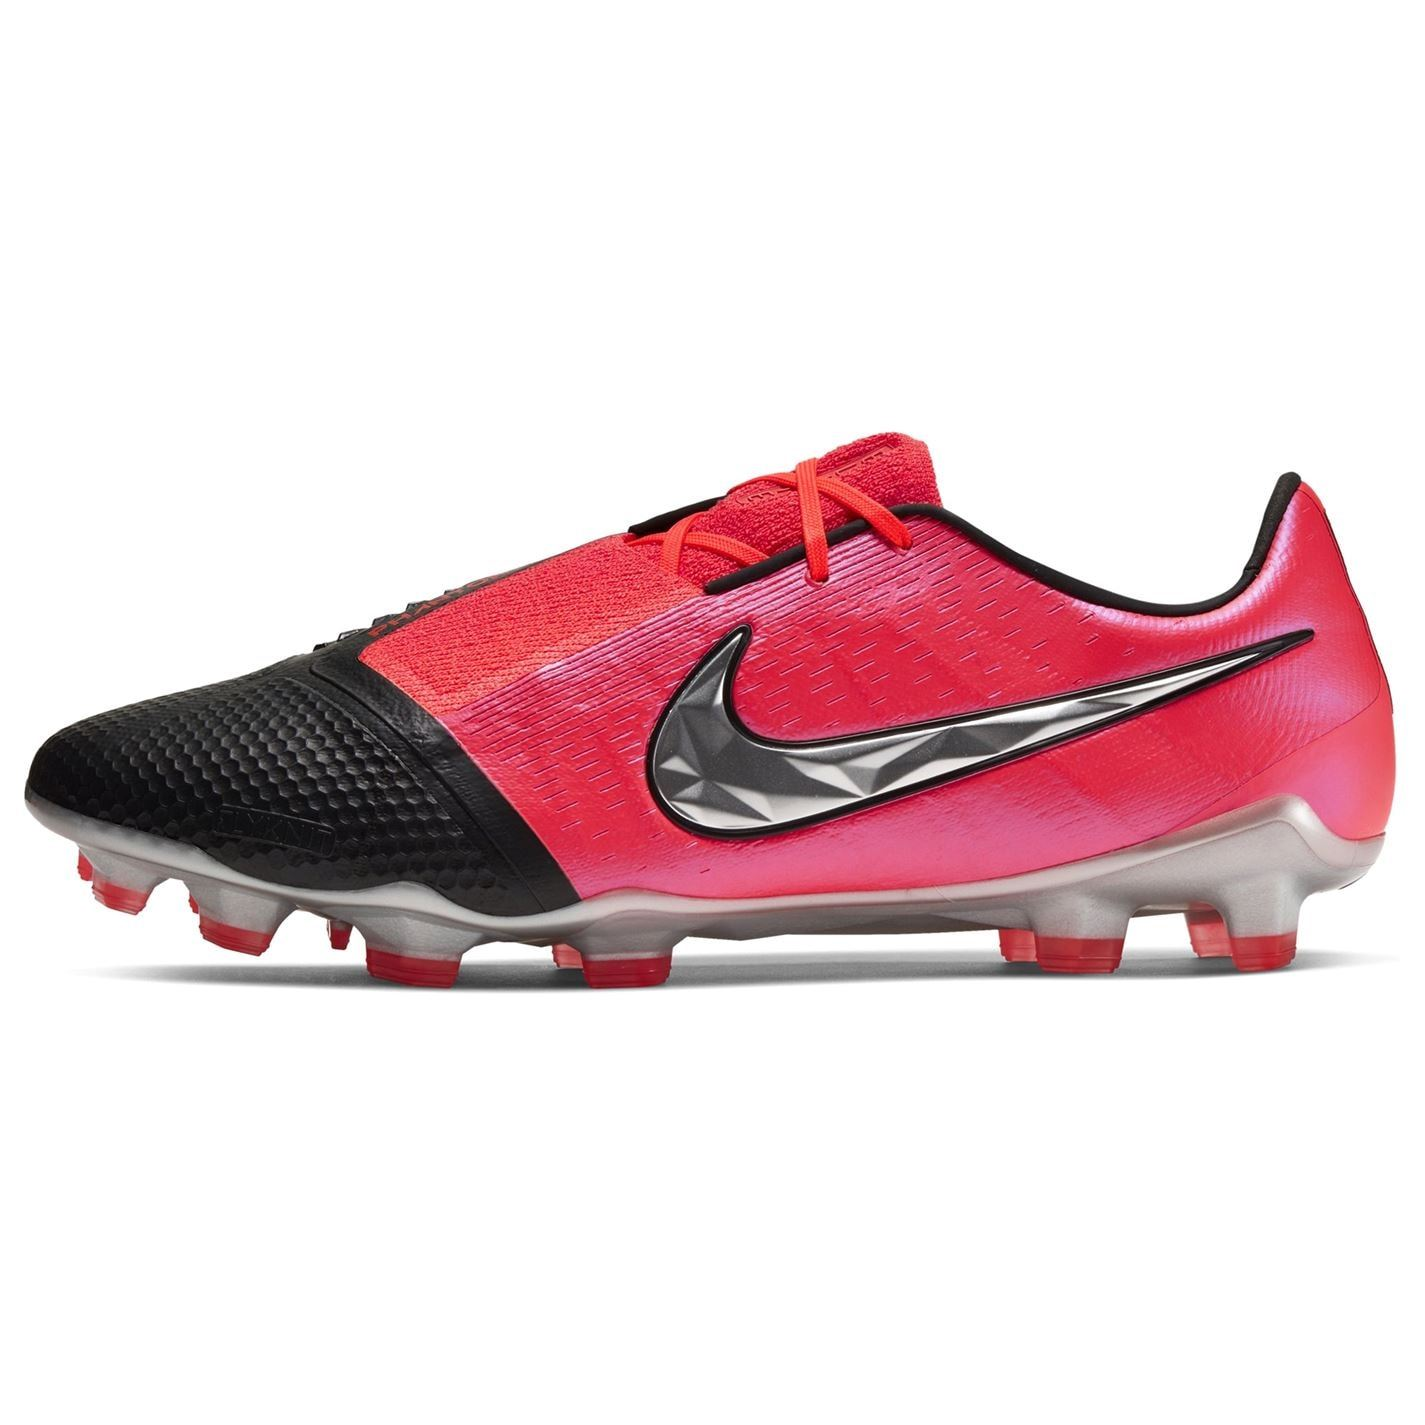 Nike-Phantom-Venom-Elite-Homme-FG-Firm-Ground-Chaussures-De-Football-Chaussures-de-foot-crampons miniature 12